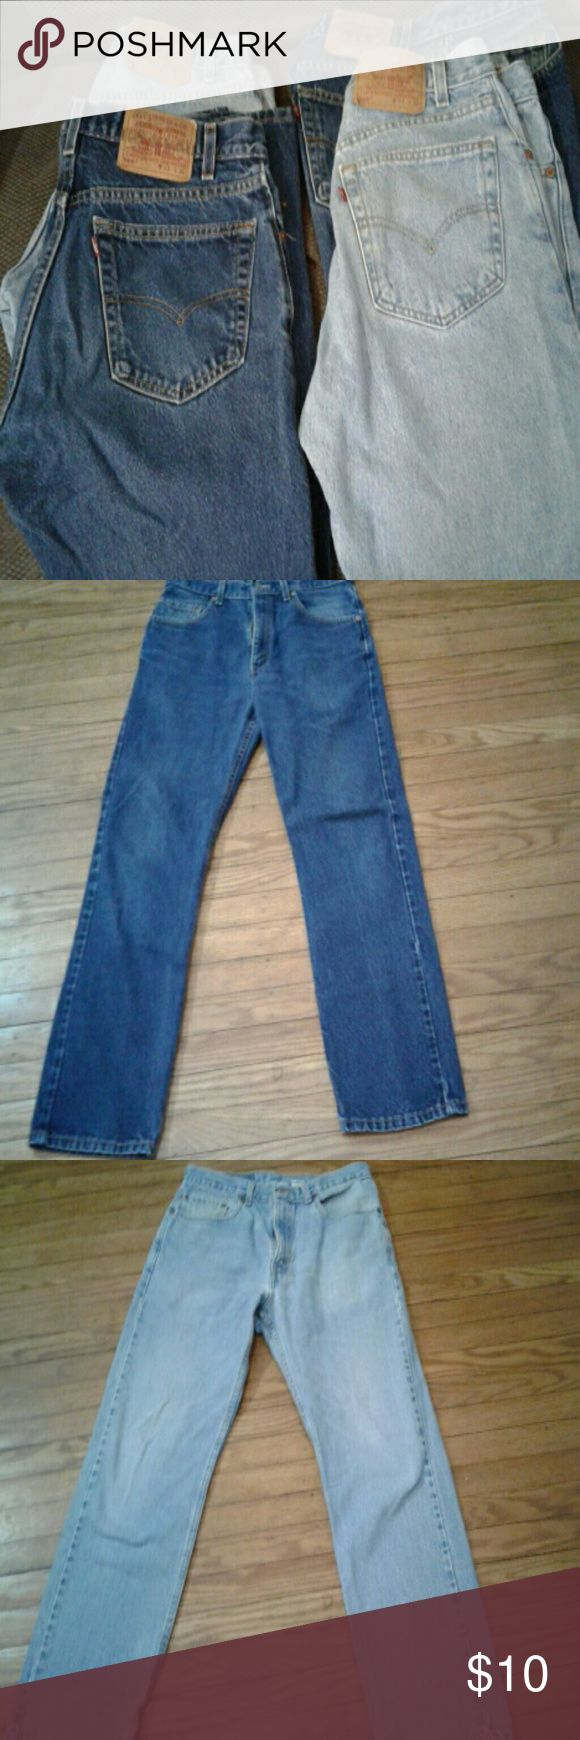 Men's Levi 505 Jeans 4 pair of Levi 505 Jeans for $32!  Or $10 each. Closet clean out.  size 33X30. 2 dark blue 2 washed blue. Great condition! Great deal! Levi's Jeans Straight